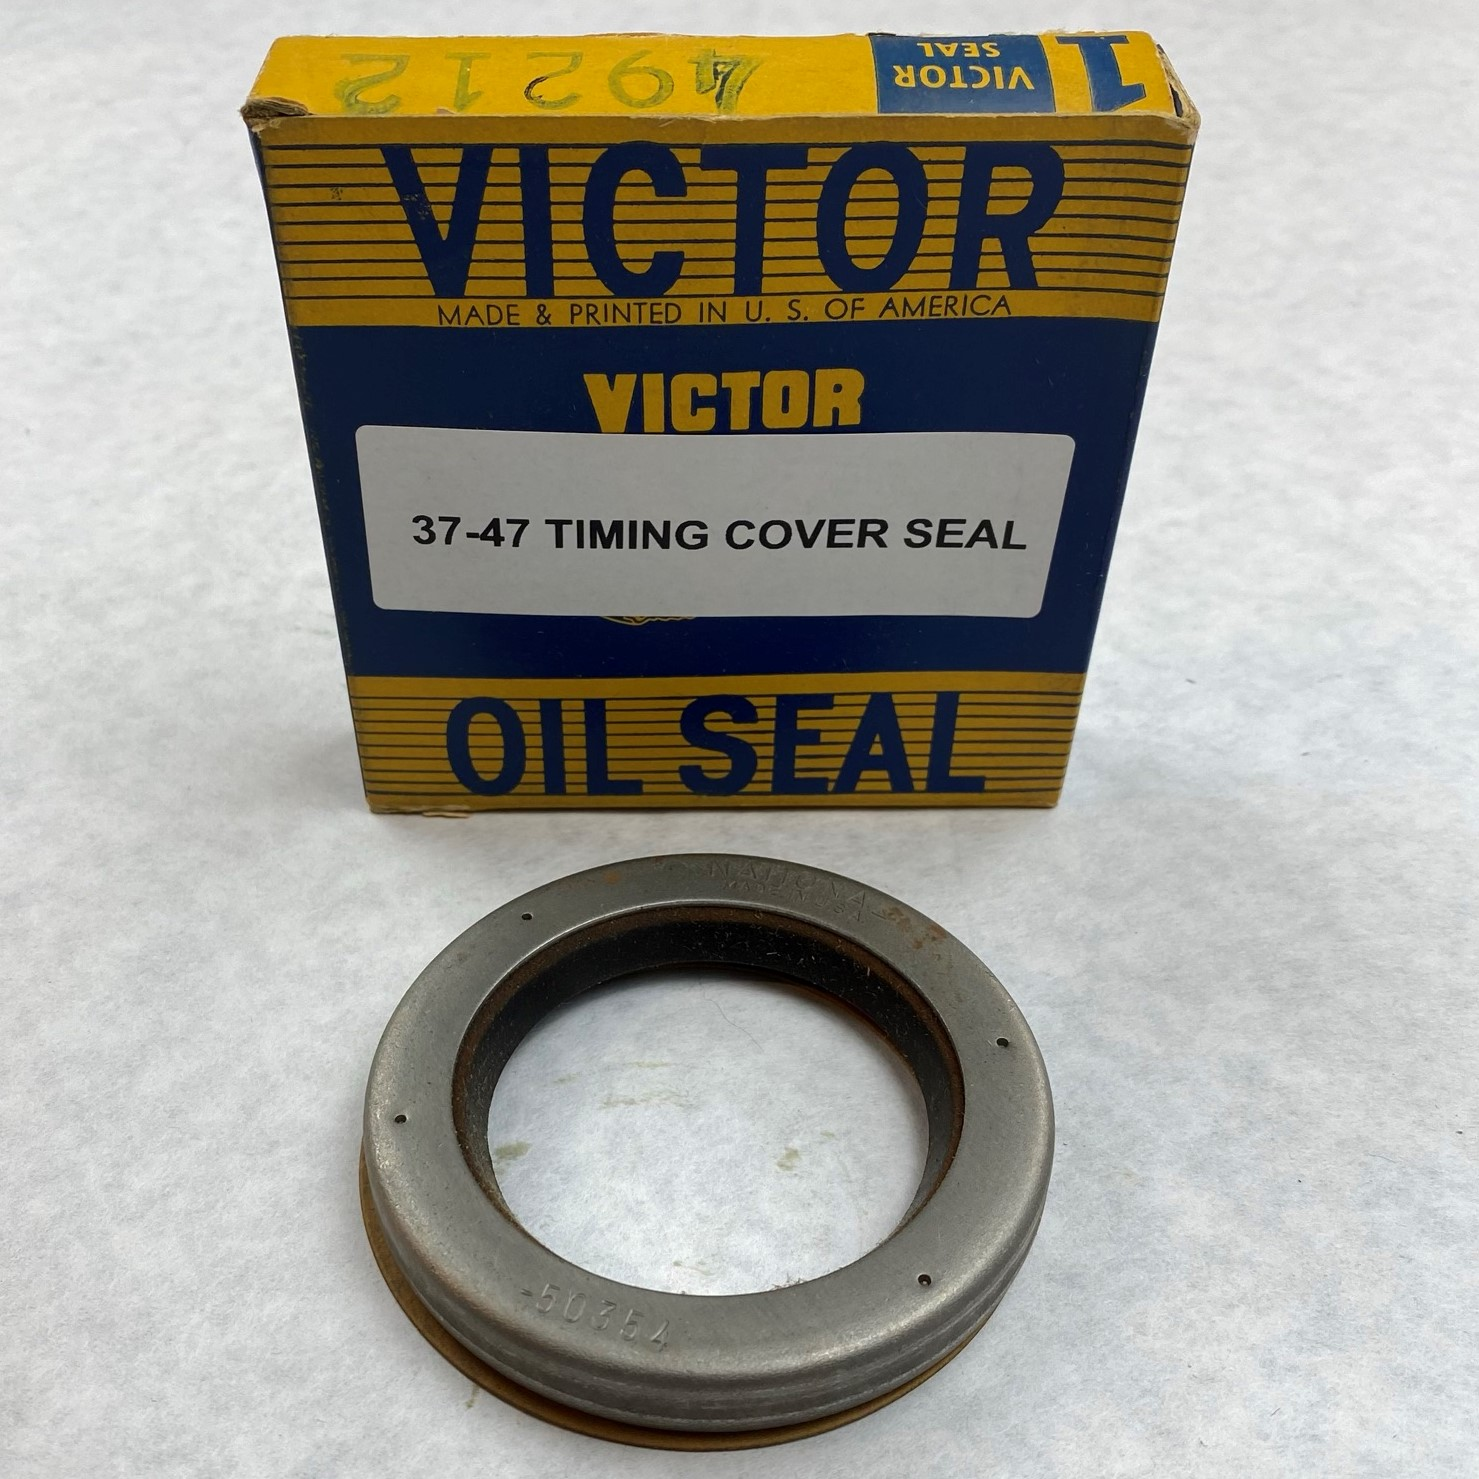 37-47 TIMING COVER SHAFT SEAL